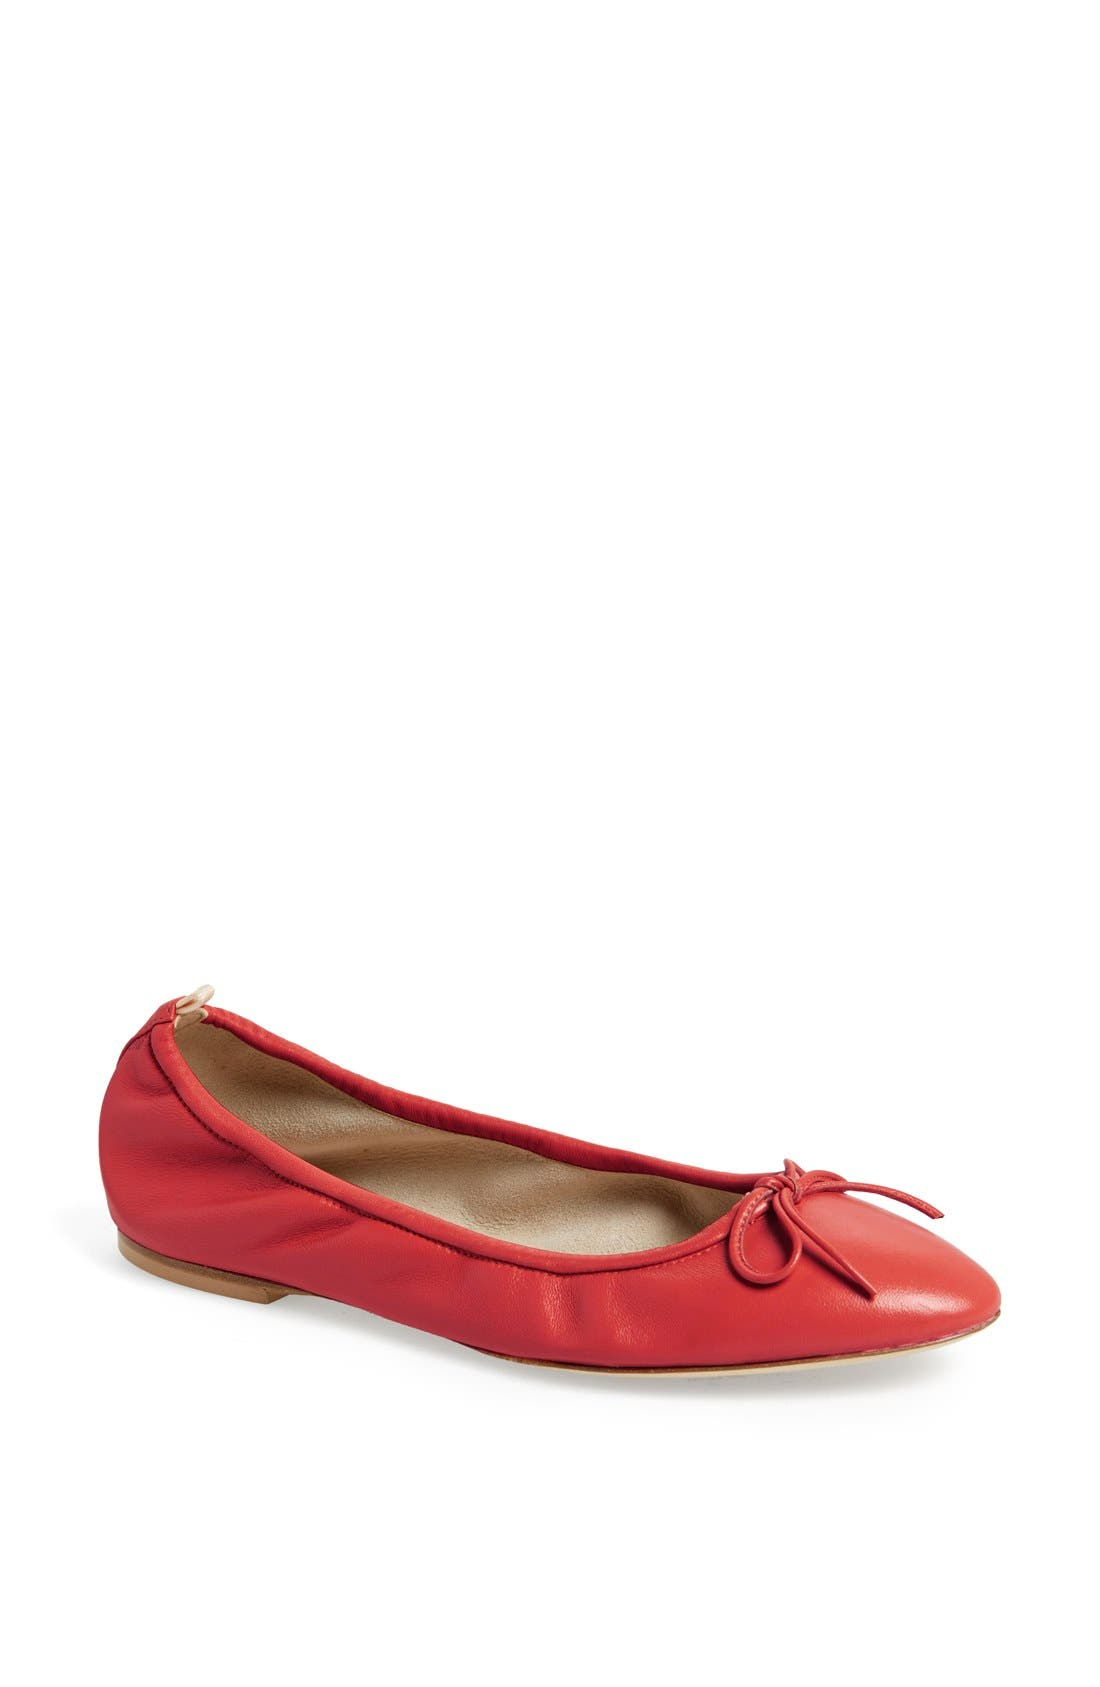 Main Image - SJP by Sarah Jessica Parker by Sarah Jessica Parker 'Gelsey' Nappa Leather Skimmer Flat